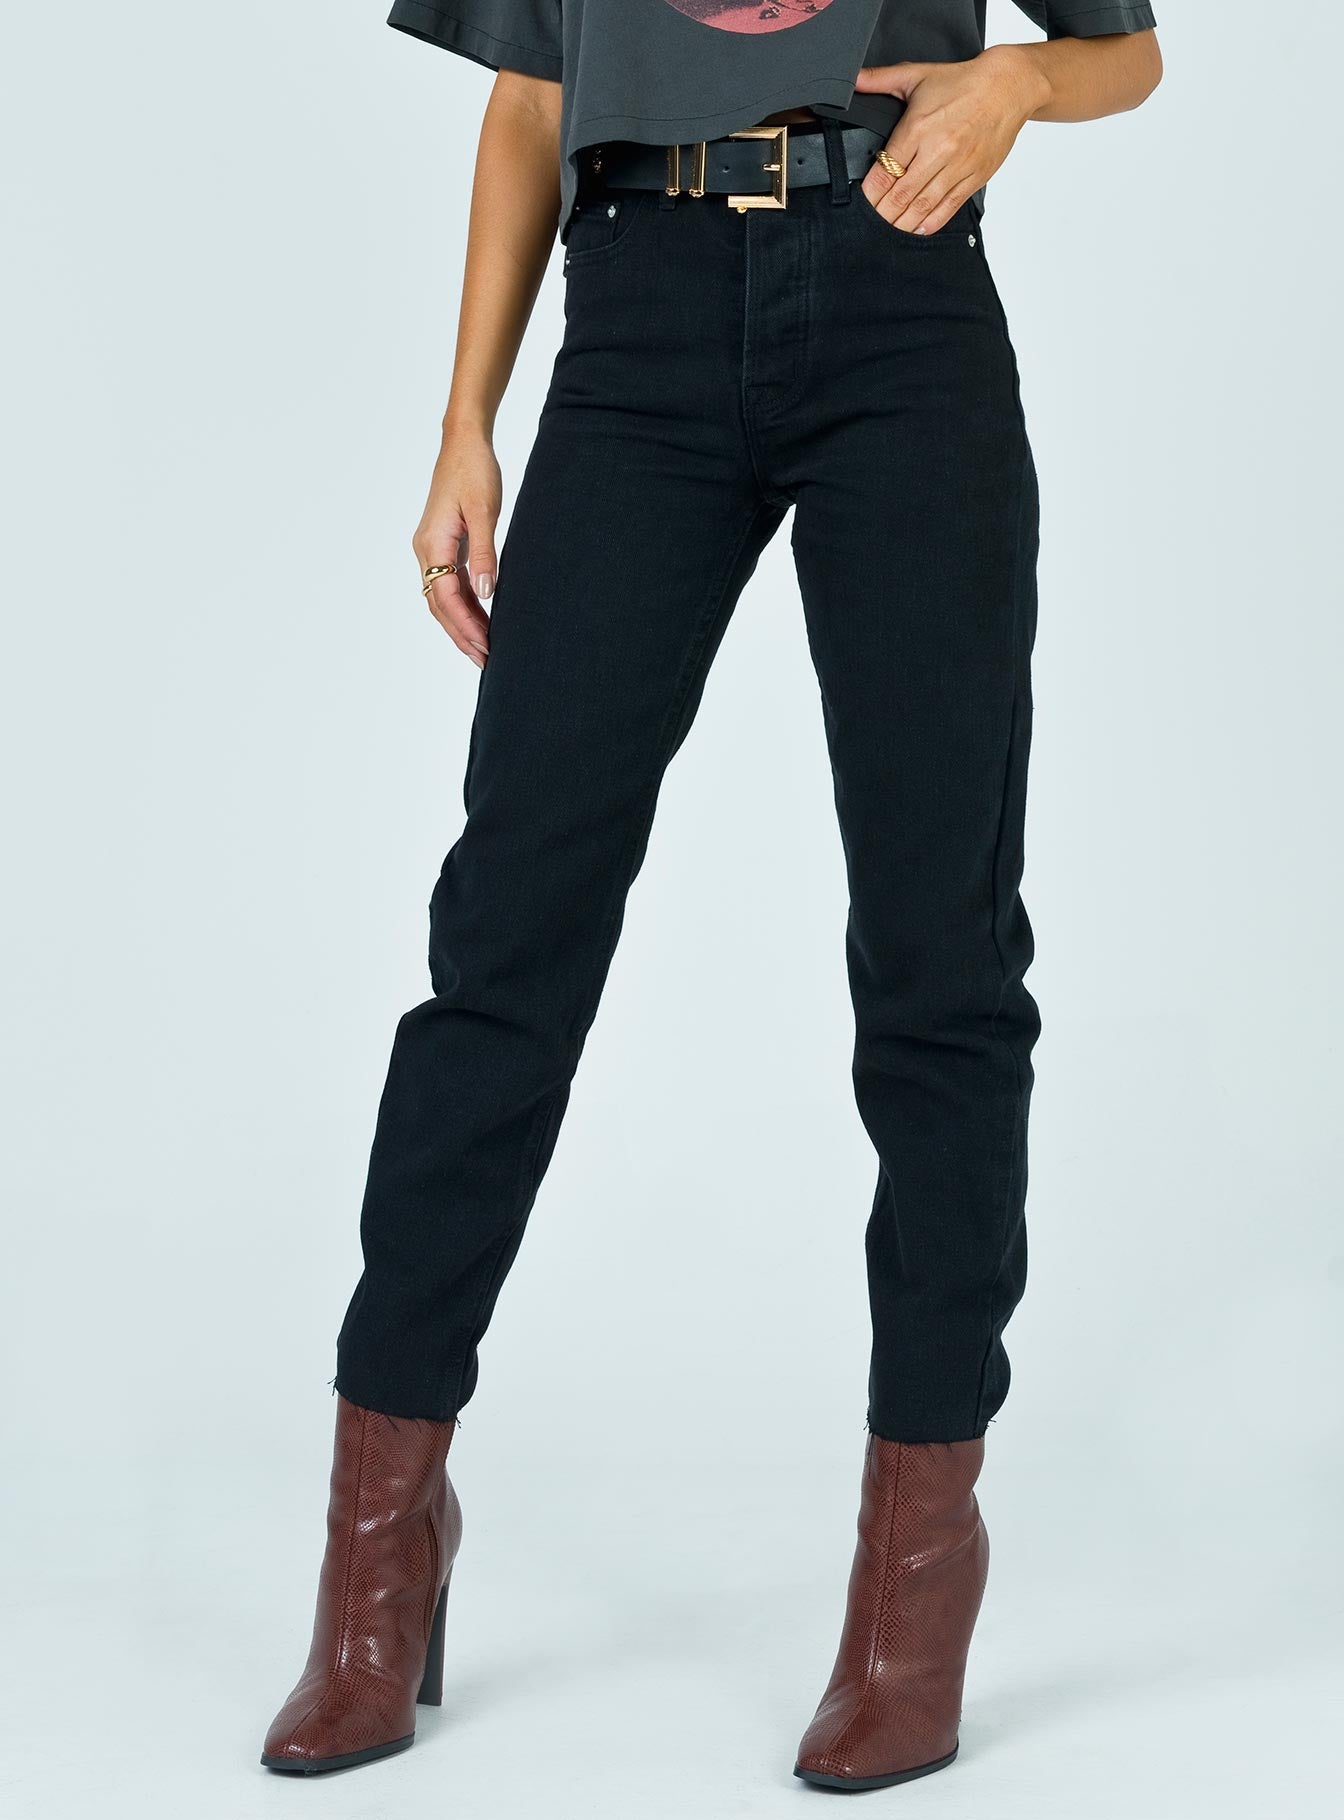 Attica Straight Leg Jean Black Denim